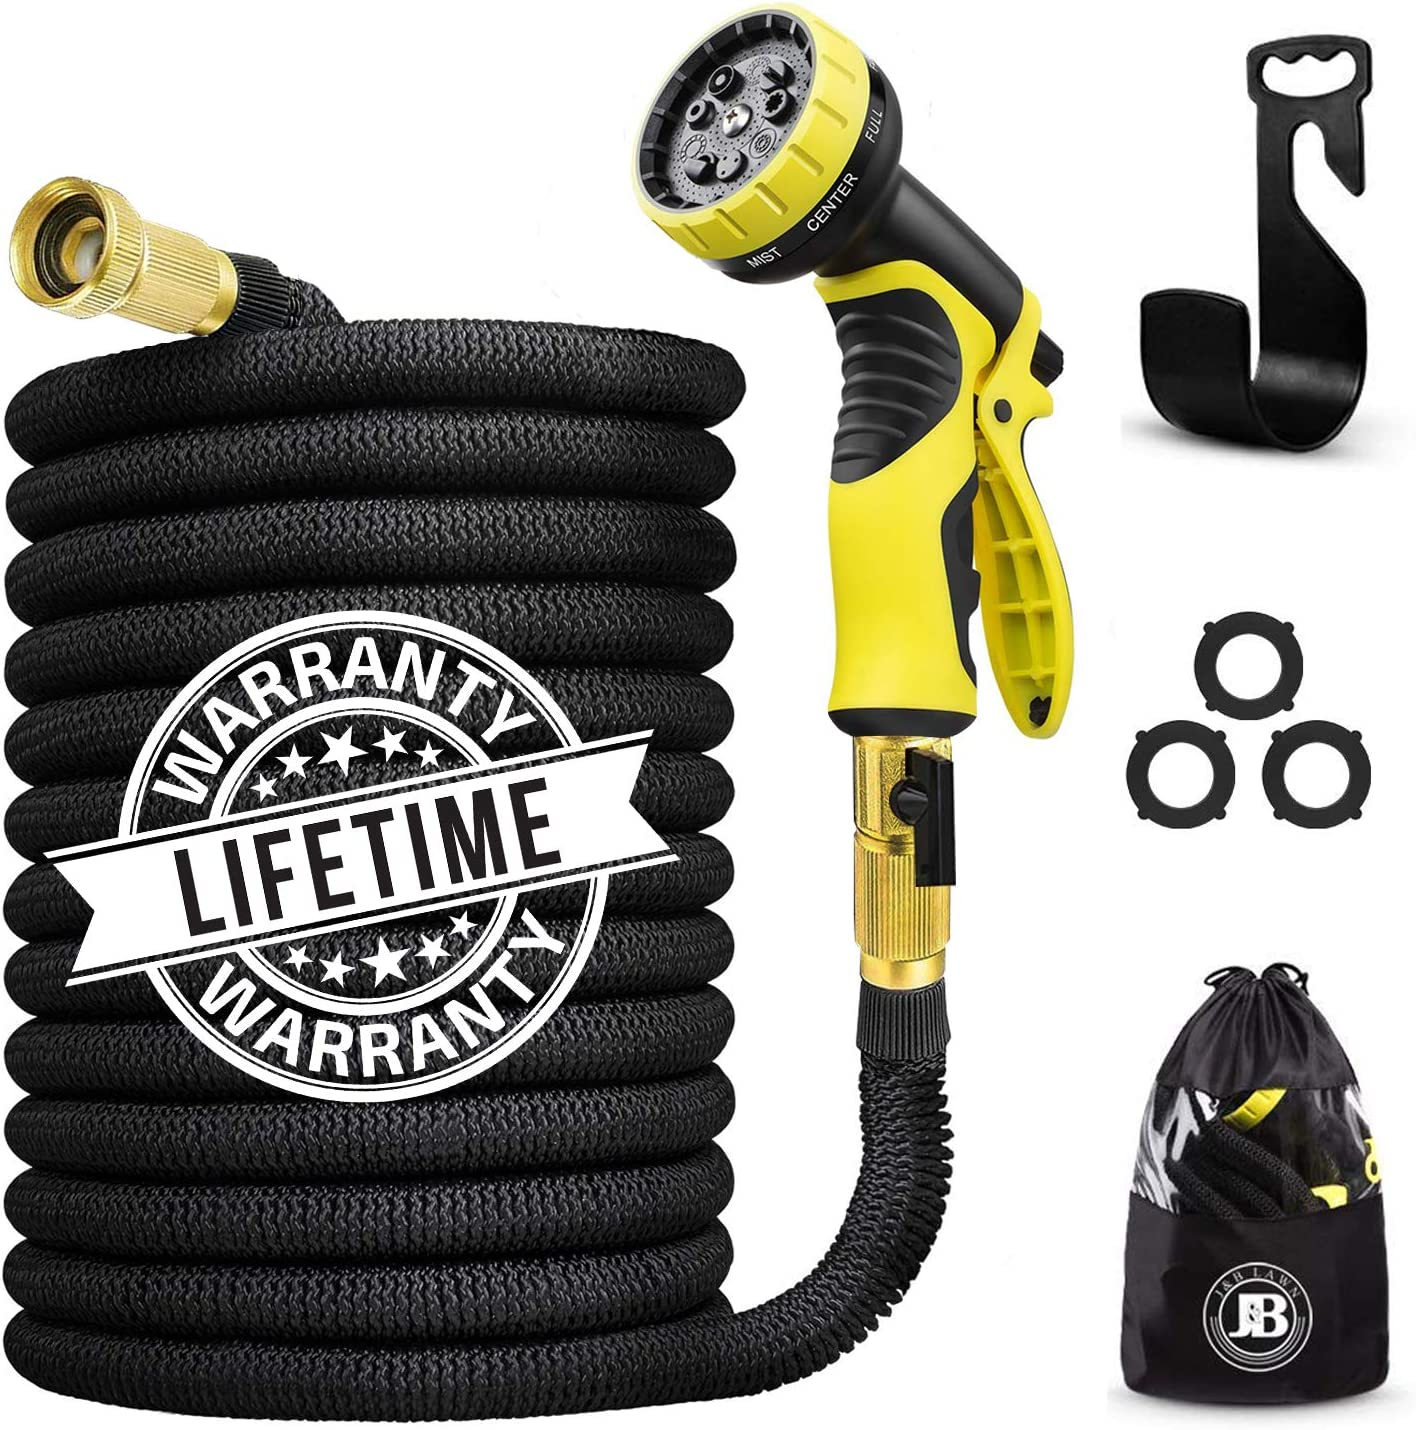 J&B XpandaHose 75ft Expandable Water Garden Hose with Holder - Heavy Duty Triple Layered Latex Core and Free 10 Spray Nozzle with Storage Bag - Light Weight Flexible and Solid Brass Ends (1)